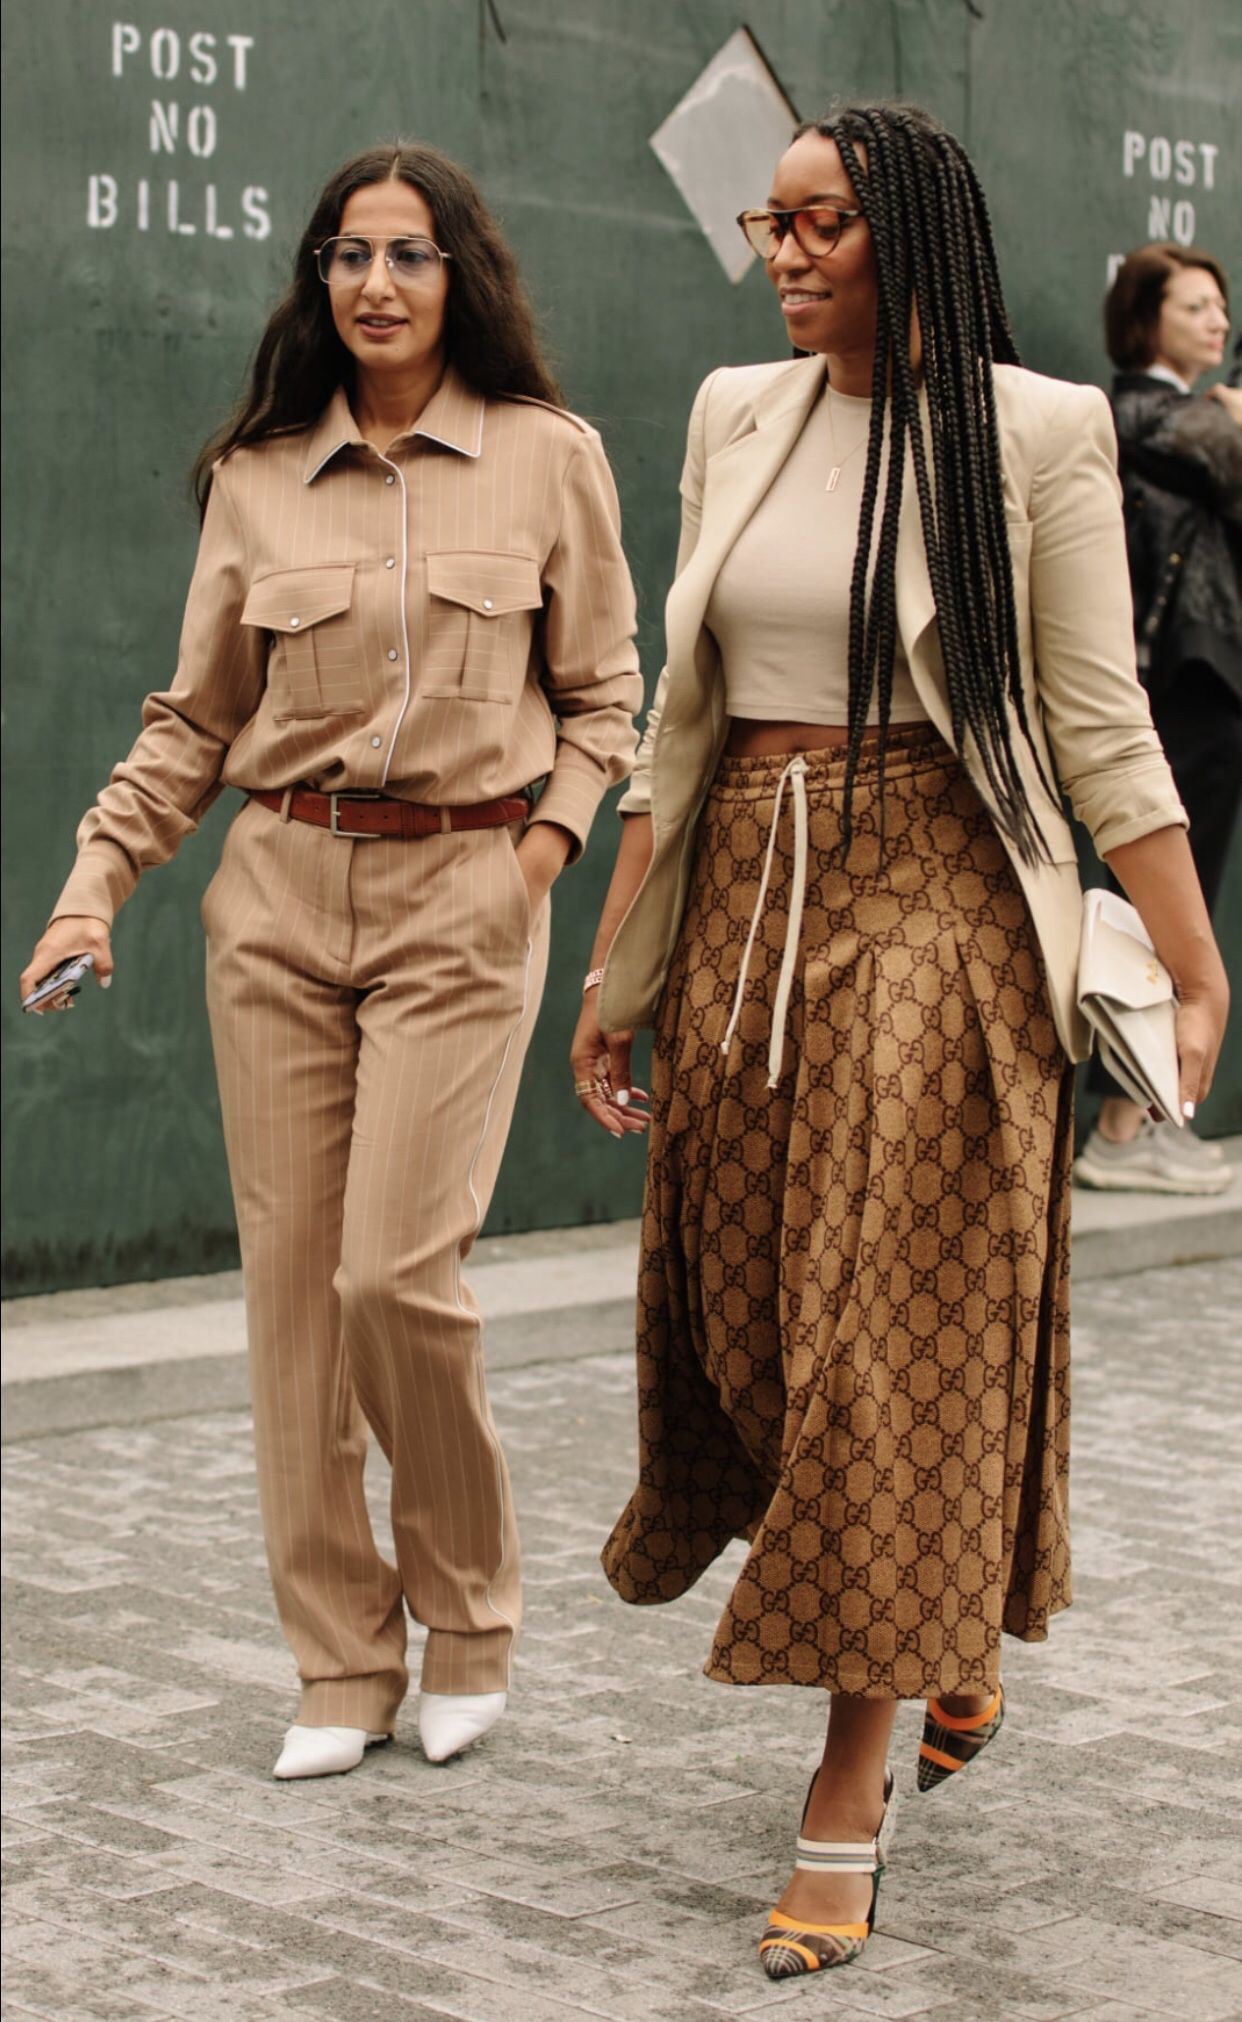 Fw Ss 2019 Rue Des Voguettes In 2019 Pinterest Fashion Style